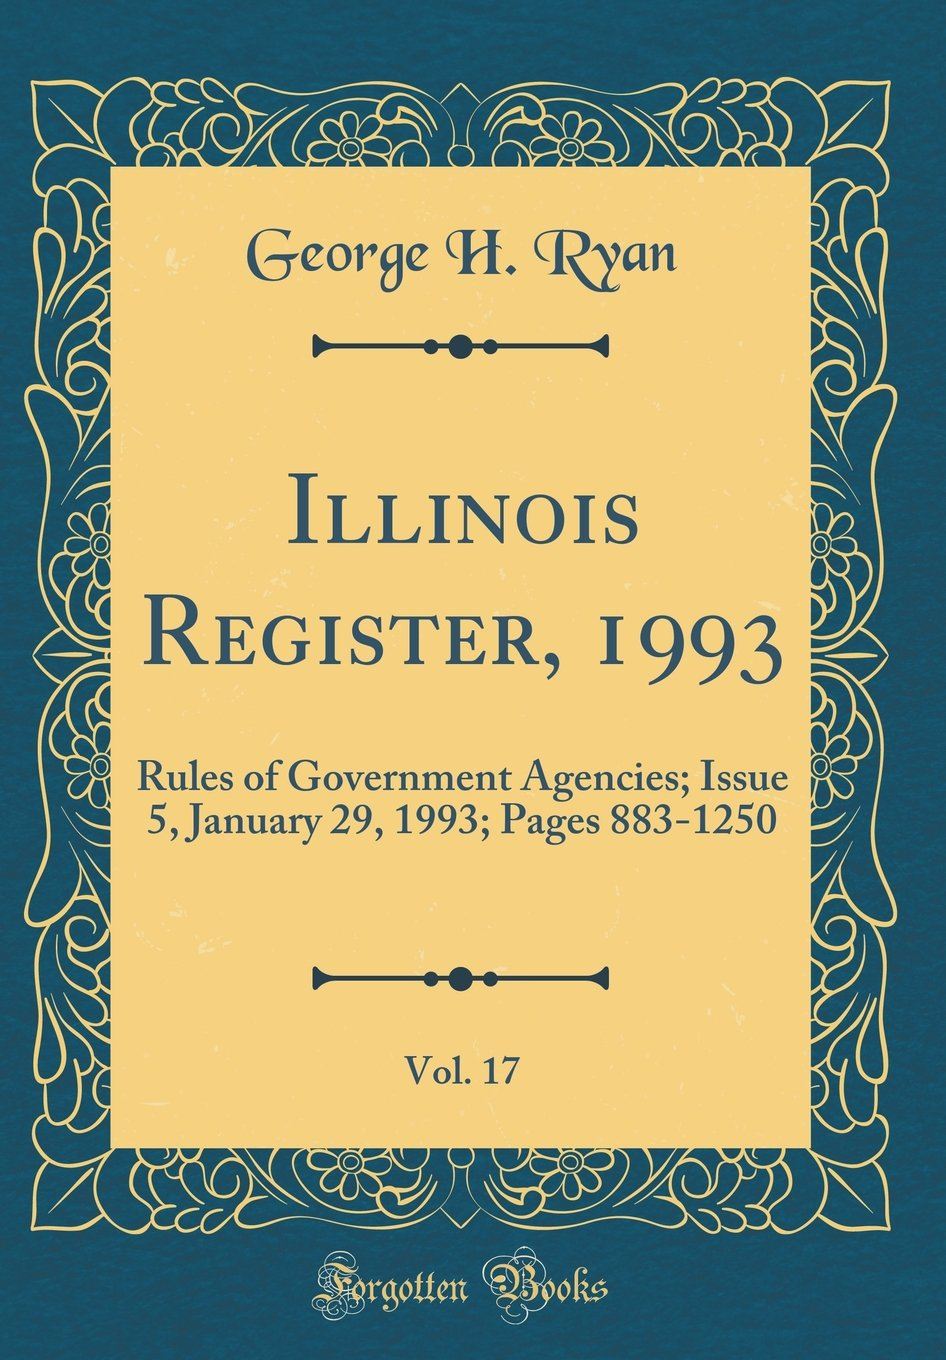 Download Illinois Register, 1993, Vol. 17: Rules of Government Agencies; Issue 5, January 29, 1993; Pages 883-1250 (Classic Reprint) pdf